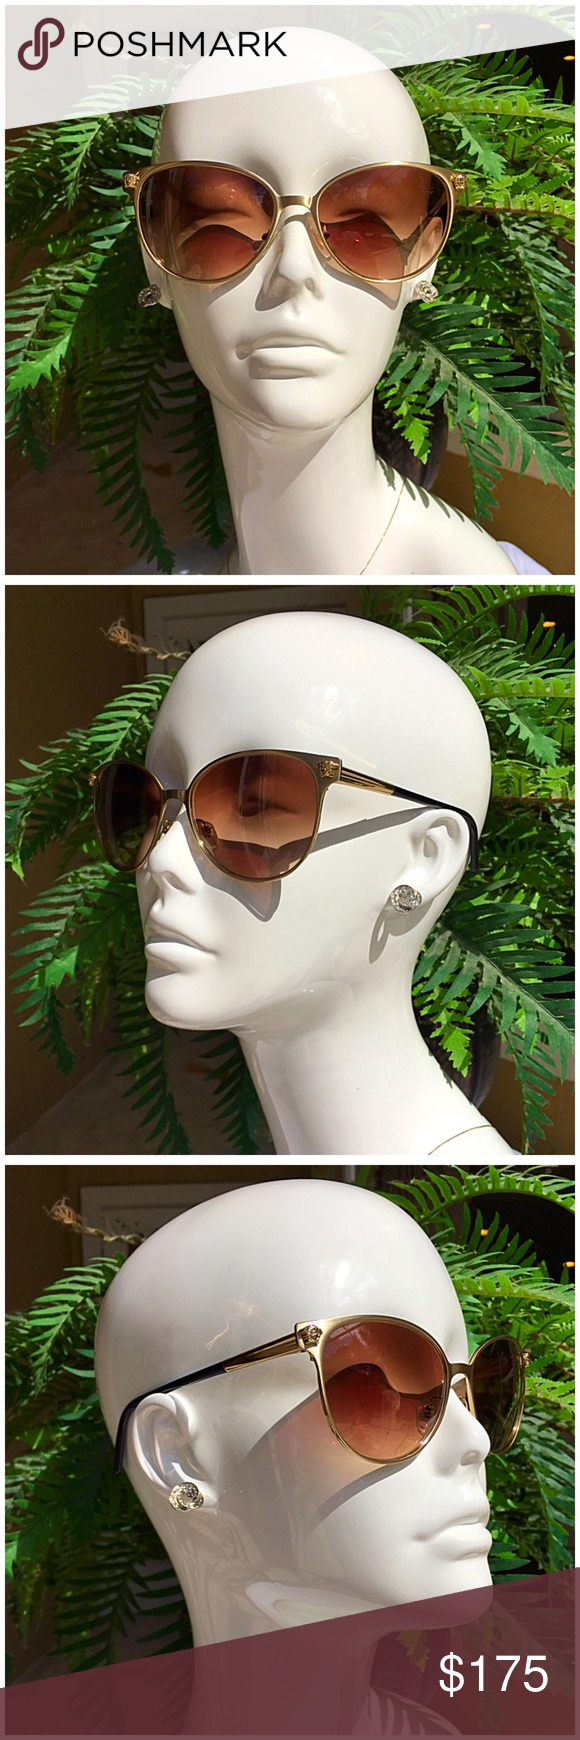 57f33b305003 Versace Sunglasses VERSACE MOD. 2168 cat eye shaped sunglasses. Brushed  gold metal frame with